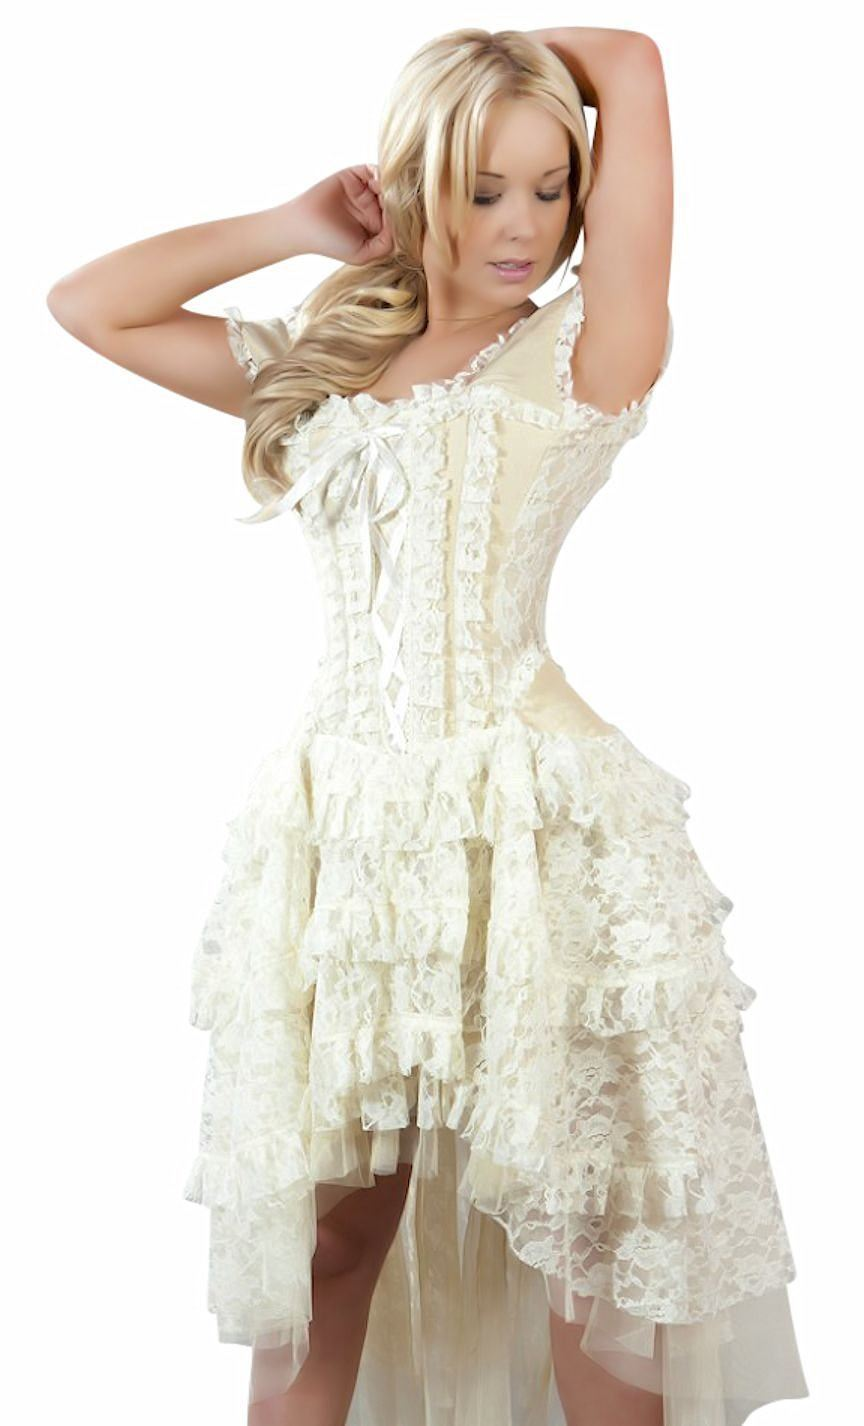 Ophelie Corset Dress Cosplay Steampunk Victorian Bridal by ...